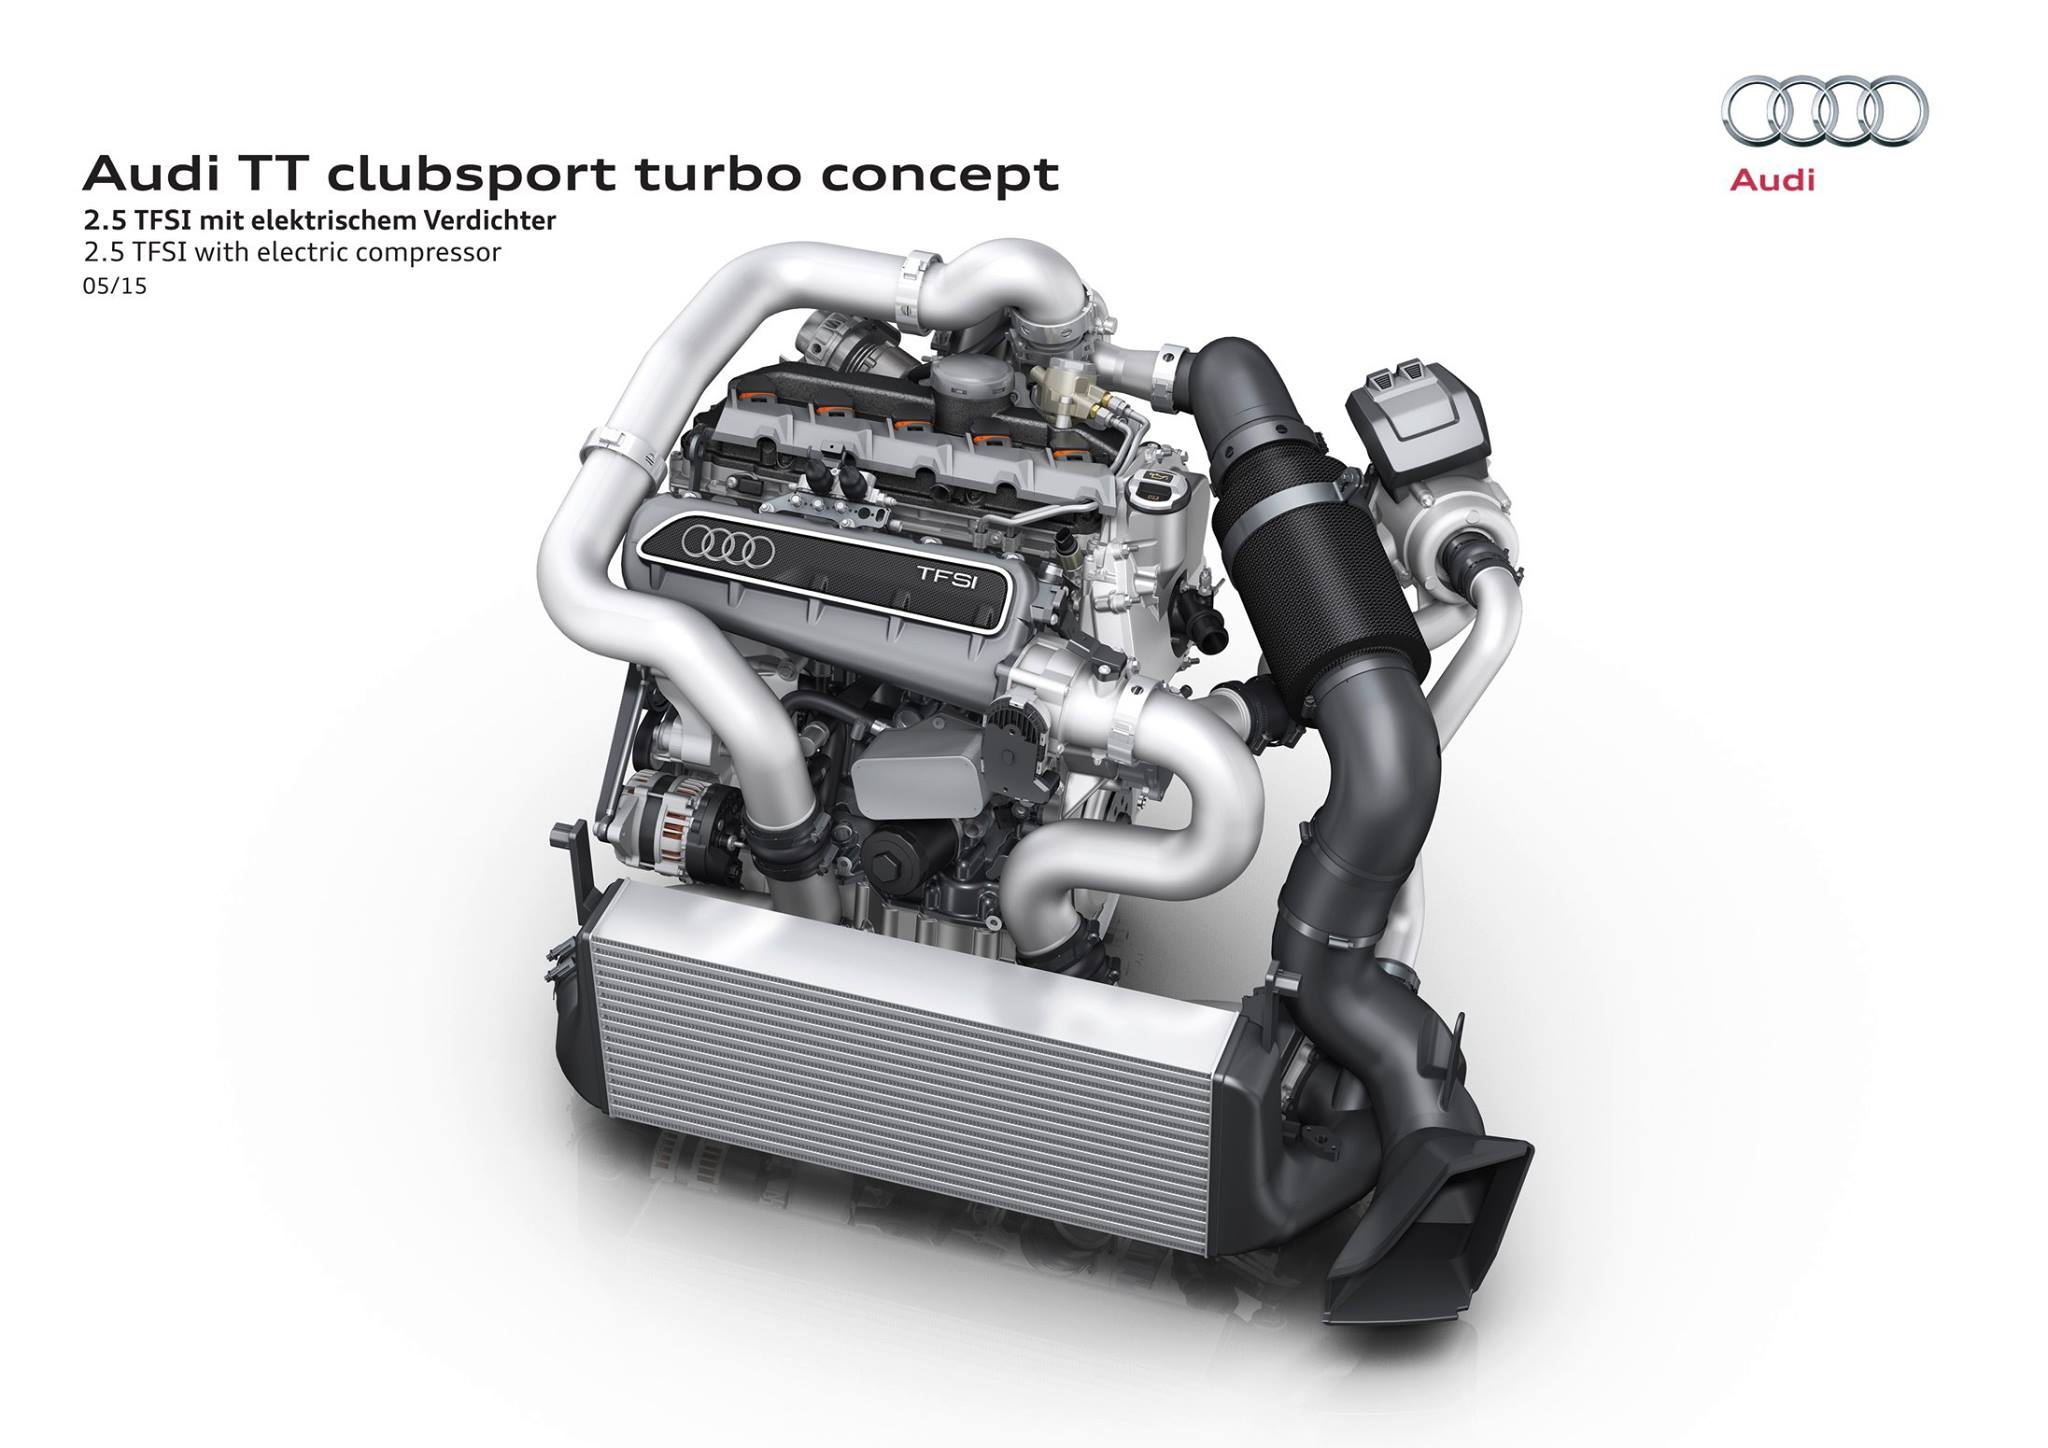 Audi TT clubsport turbo concept - engine / moteur